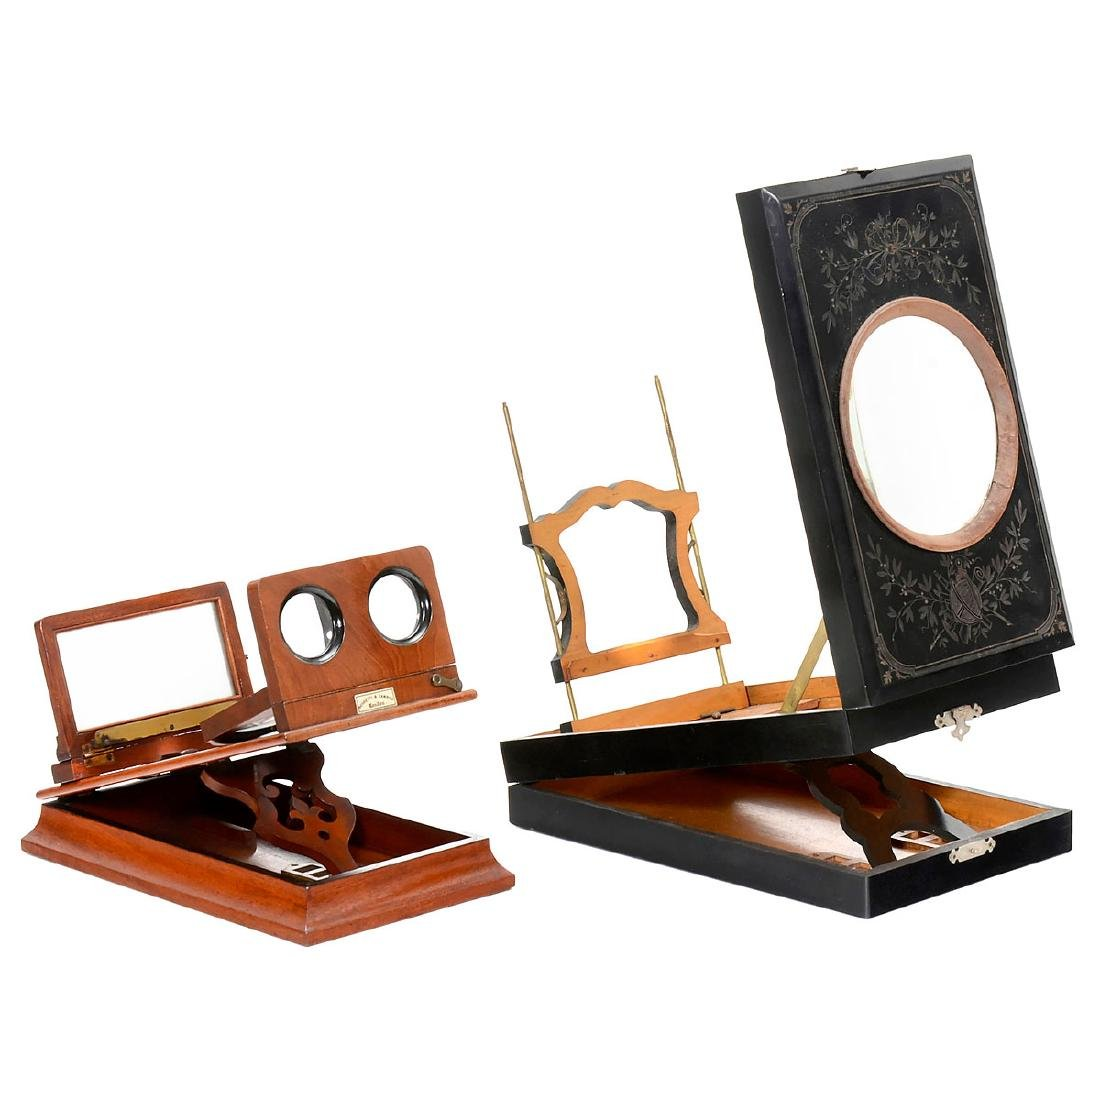 Stereo Graphoscope by Negretti & Zambra, c. 1880